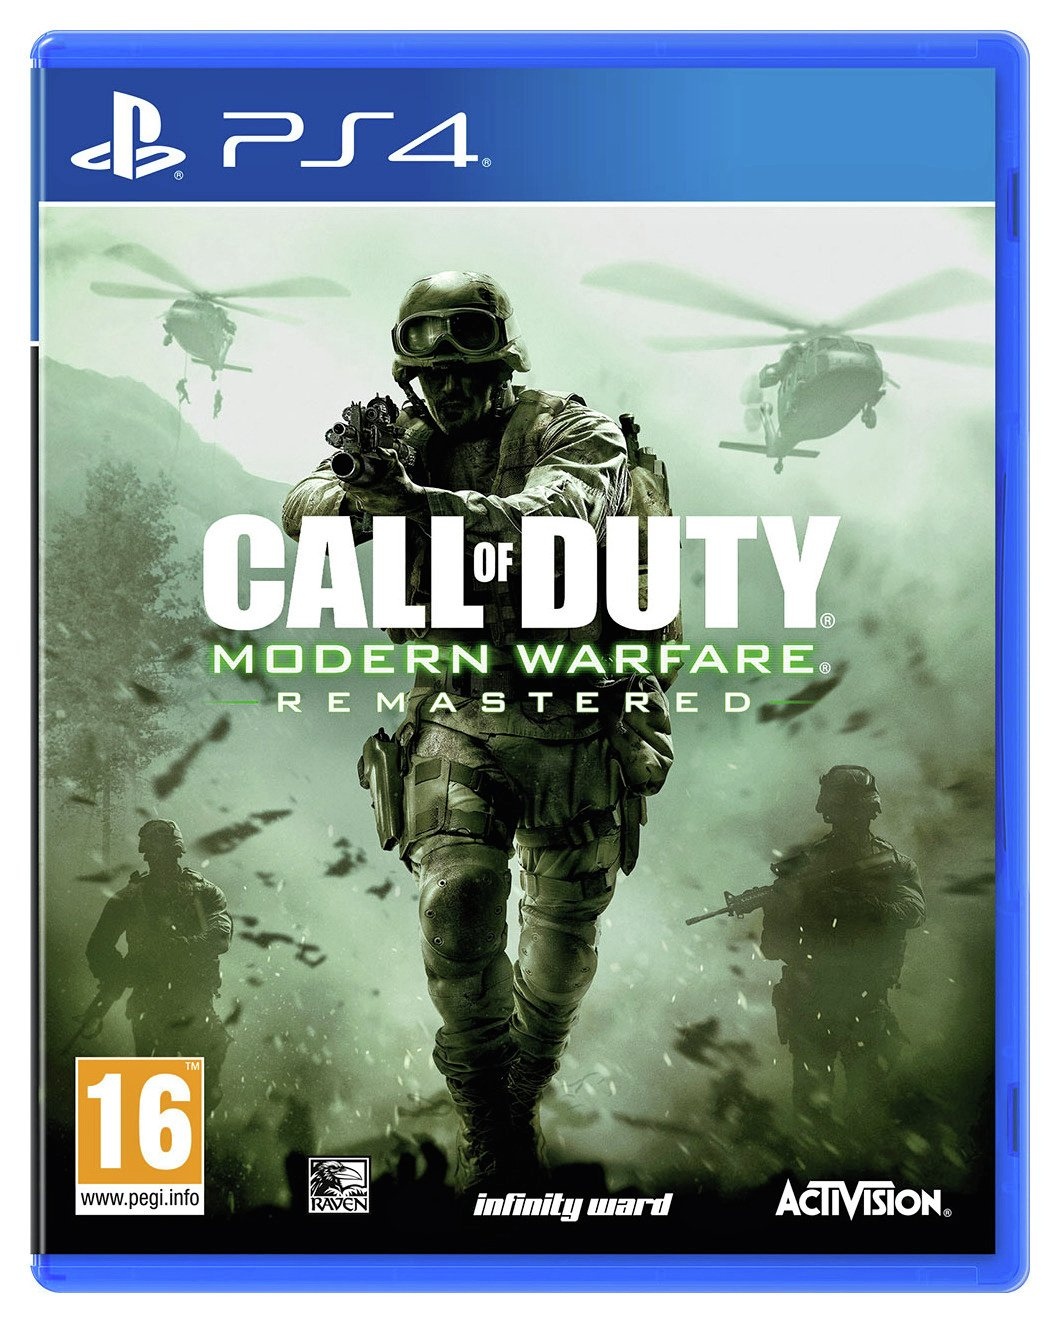 Call of Duty 4: Modern Warfare PS4 Game from call of duty